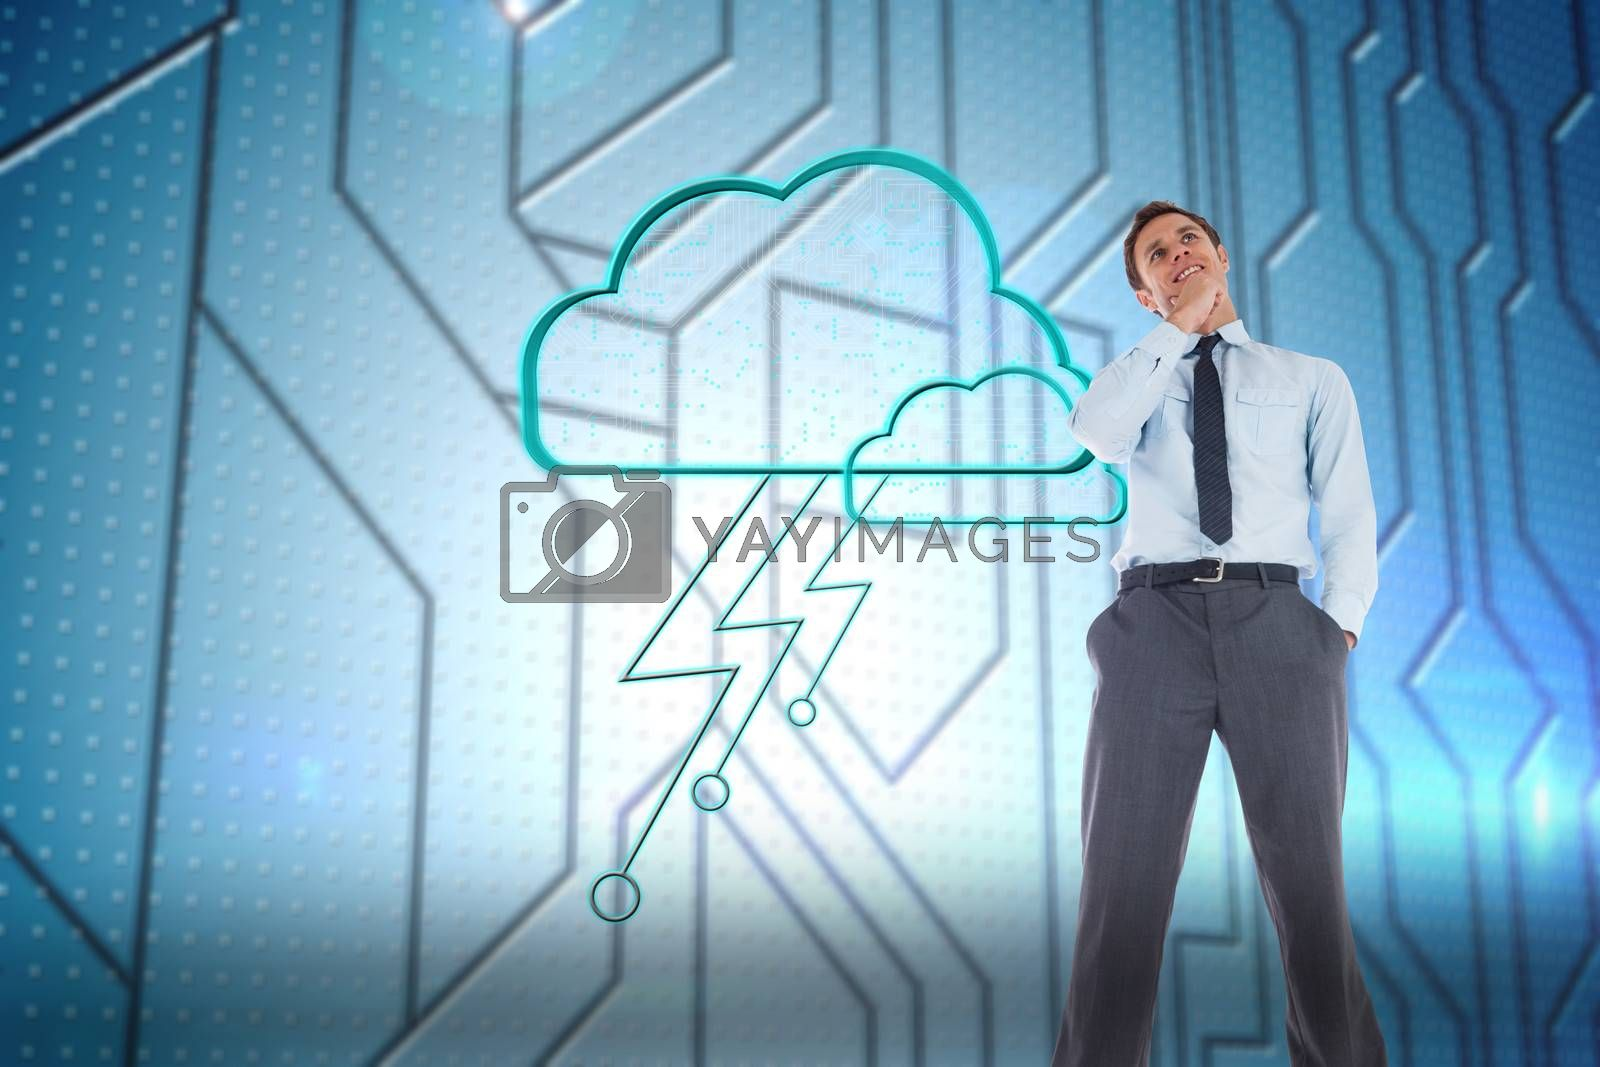 Composite image of thoughtful businessman with hand on chin by Wavebreakmedia